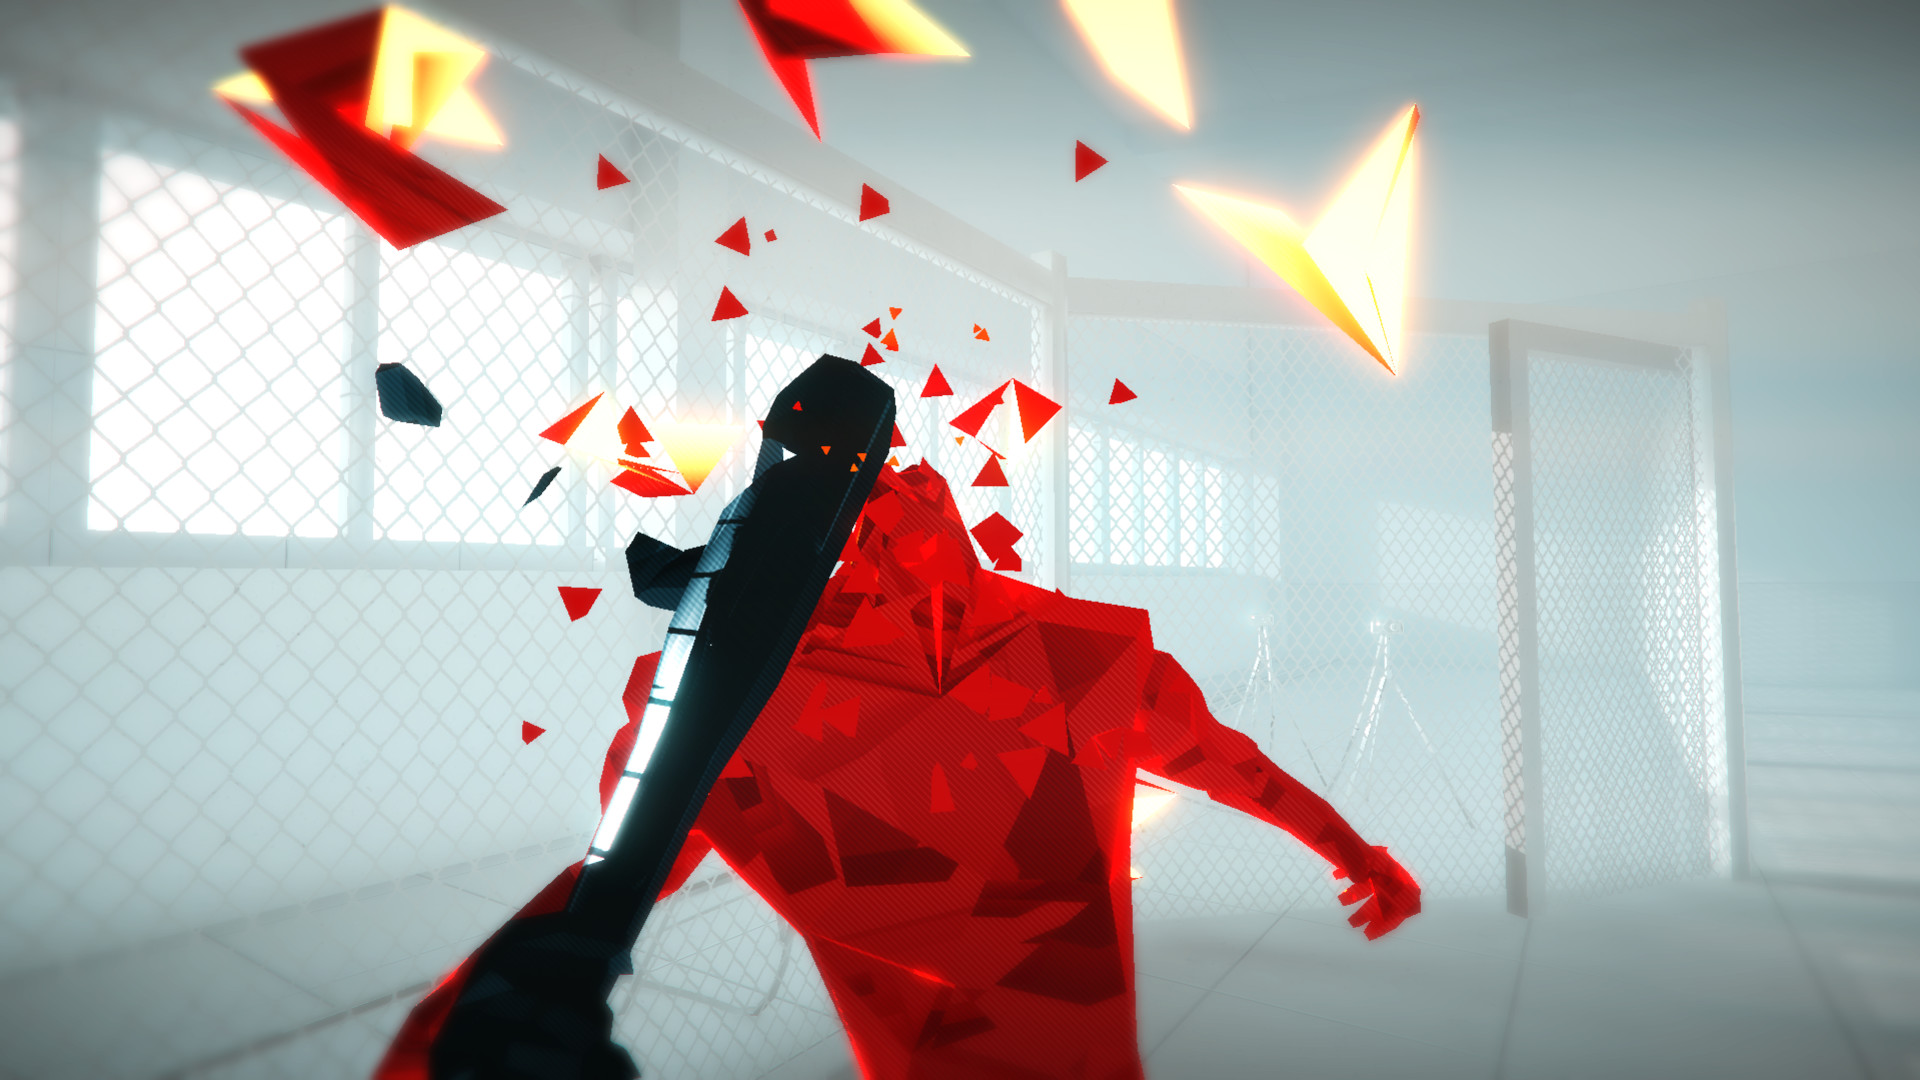 Superhot VR has made more money than the original